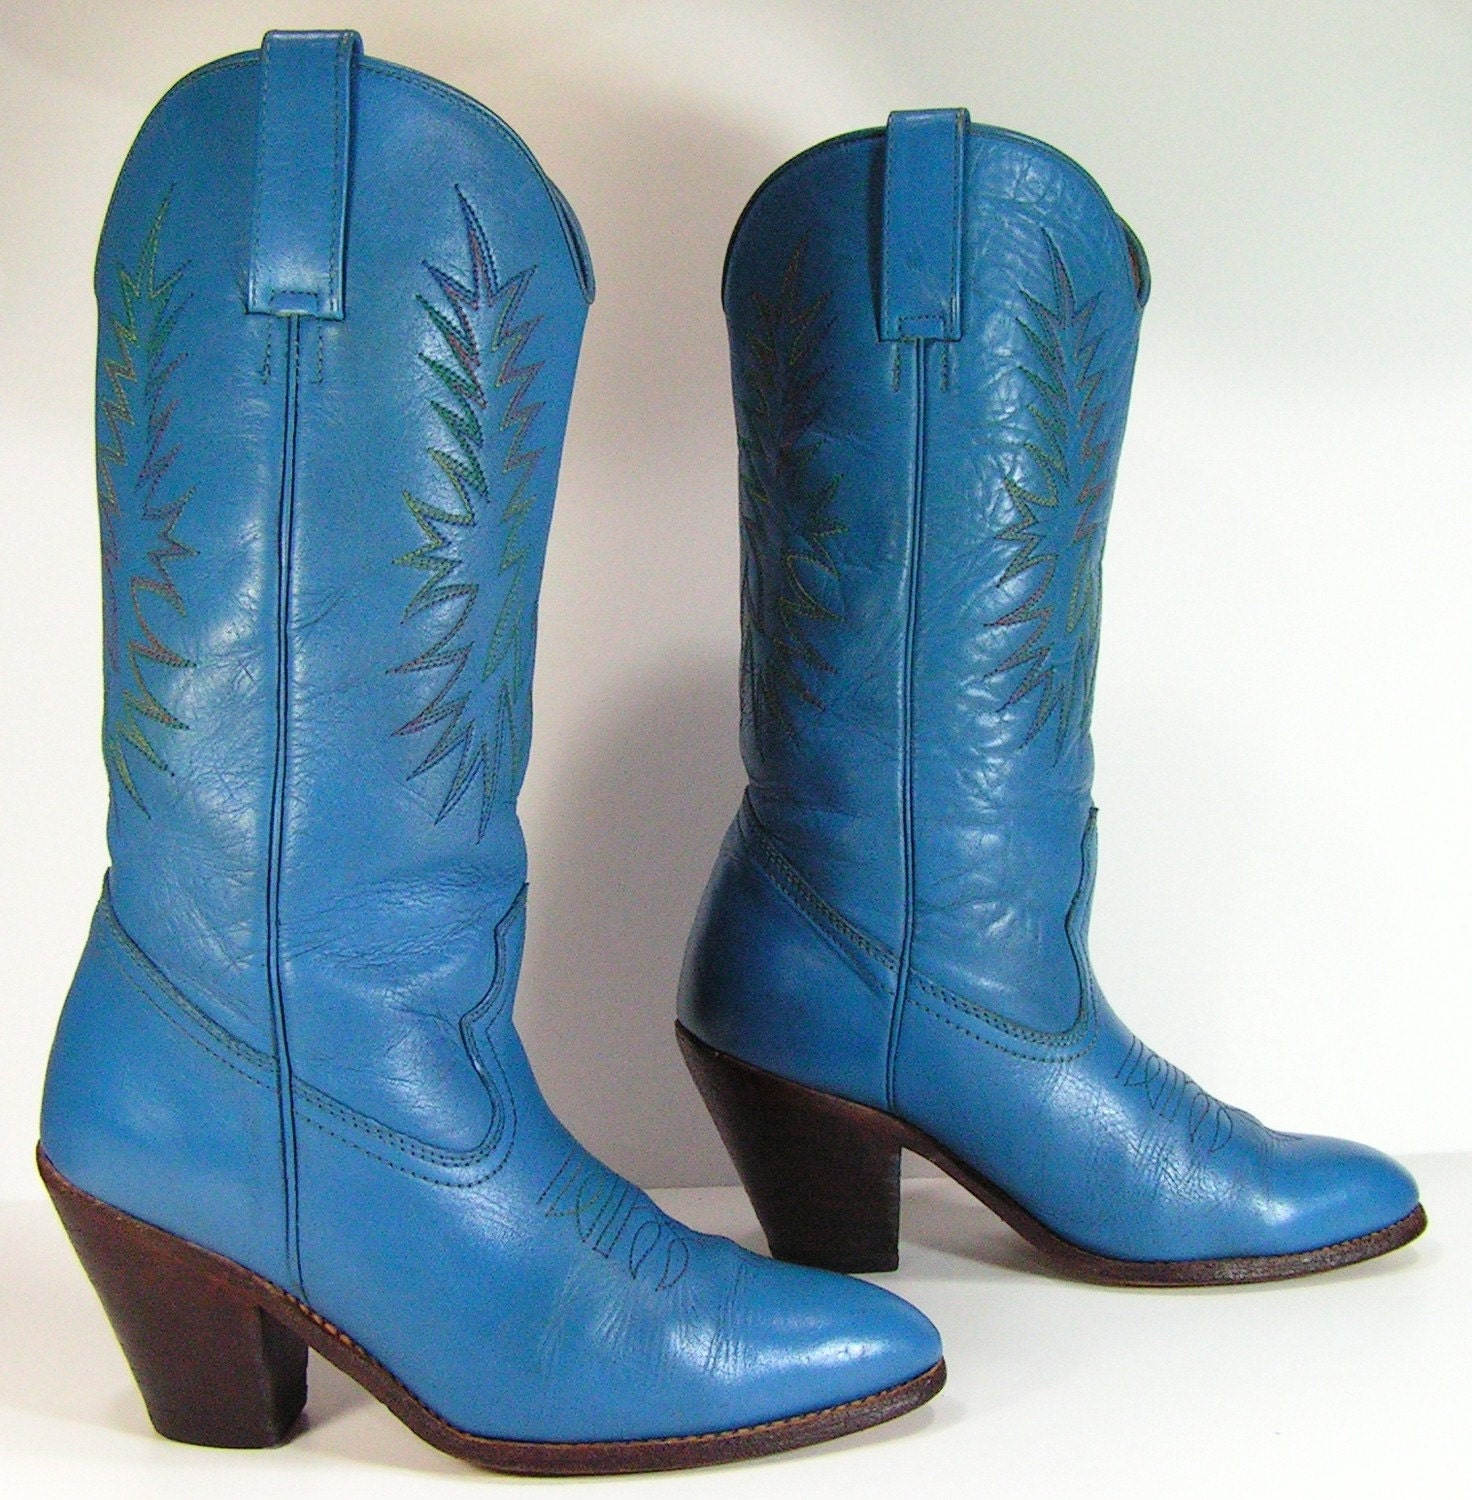 cowboy boots womens 9 M B blue western by vintagecowboyboots